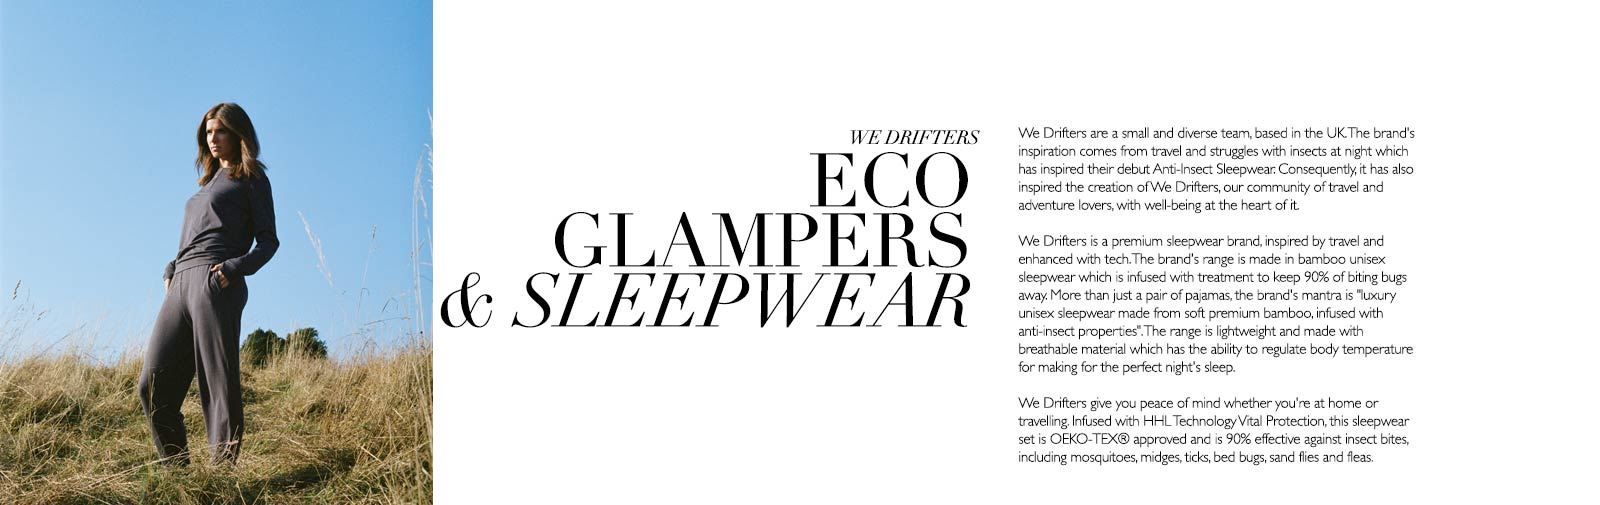 WE DRIFTERS - ECO GLAMPERS & SLEEPWEAR - We Drifters are a small and diverse team, based in the UK. The brand's inspiration comes from travel and struggles with insects at night which has inspired their debut Anti-Insect Sleepwear. Consequently, it has also inspired the creation of We Drifters, our community of travel and adventure lovers, with well-being at the heart of it.  We Drifters is a premium sleepwear brand, inspired by travel and enhanced with tech. The brand's range is made in bamboo unisex sleepwear which is infused with treatment to keep 90% of biting bugs away. More than just a pair of pajamas, the brand's mantra is 'luxury unisex sleepwear made from soft premium bamboo, infused with anti-insect properties'. The range is lightweight and made with breathable material which has the ability to regulate body temperature for making for the perfect night's sleep.  We Drifters give you peace of mind whether you're at home or travelling. Infused with HHL Technology Vital Protection, this sleepwear set is OEKO-TEX® approved and is 90% effective against insect bites, including mosquitoes, midges, ticks, bed bugs, sand flies and fleas.